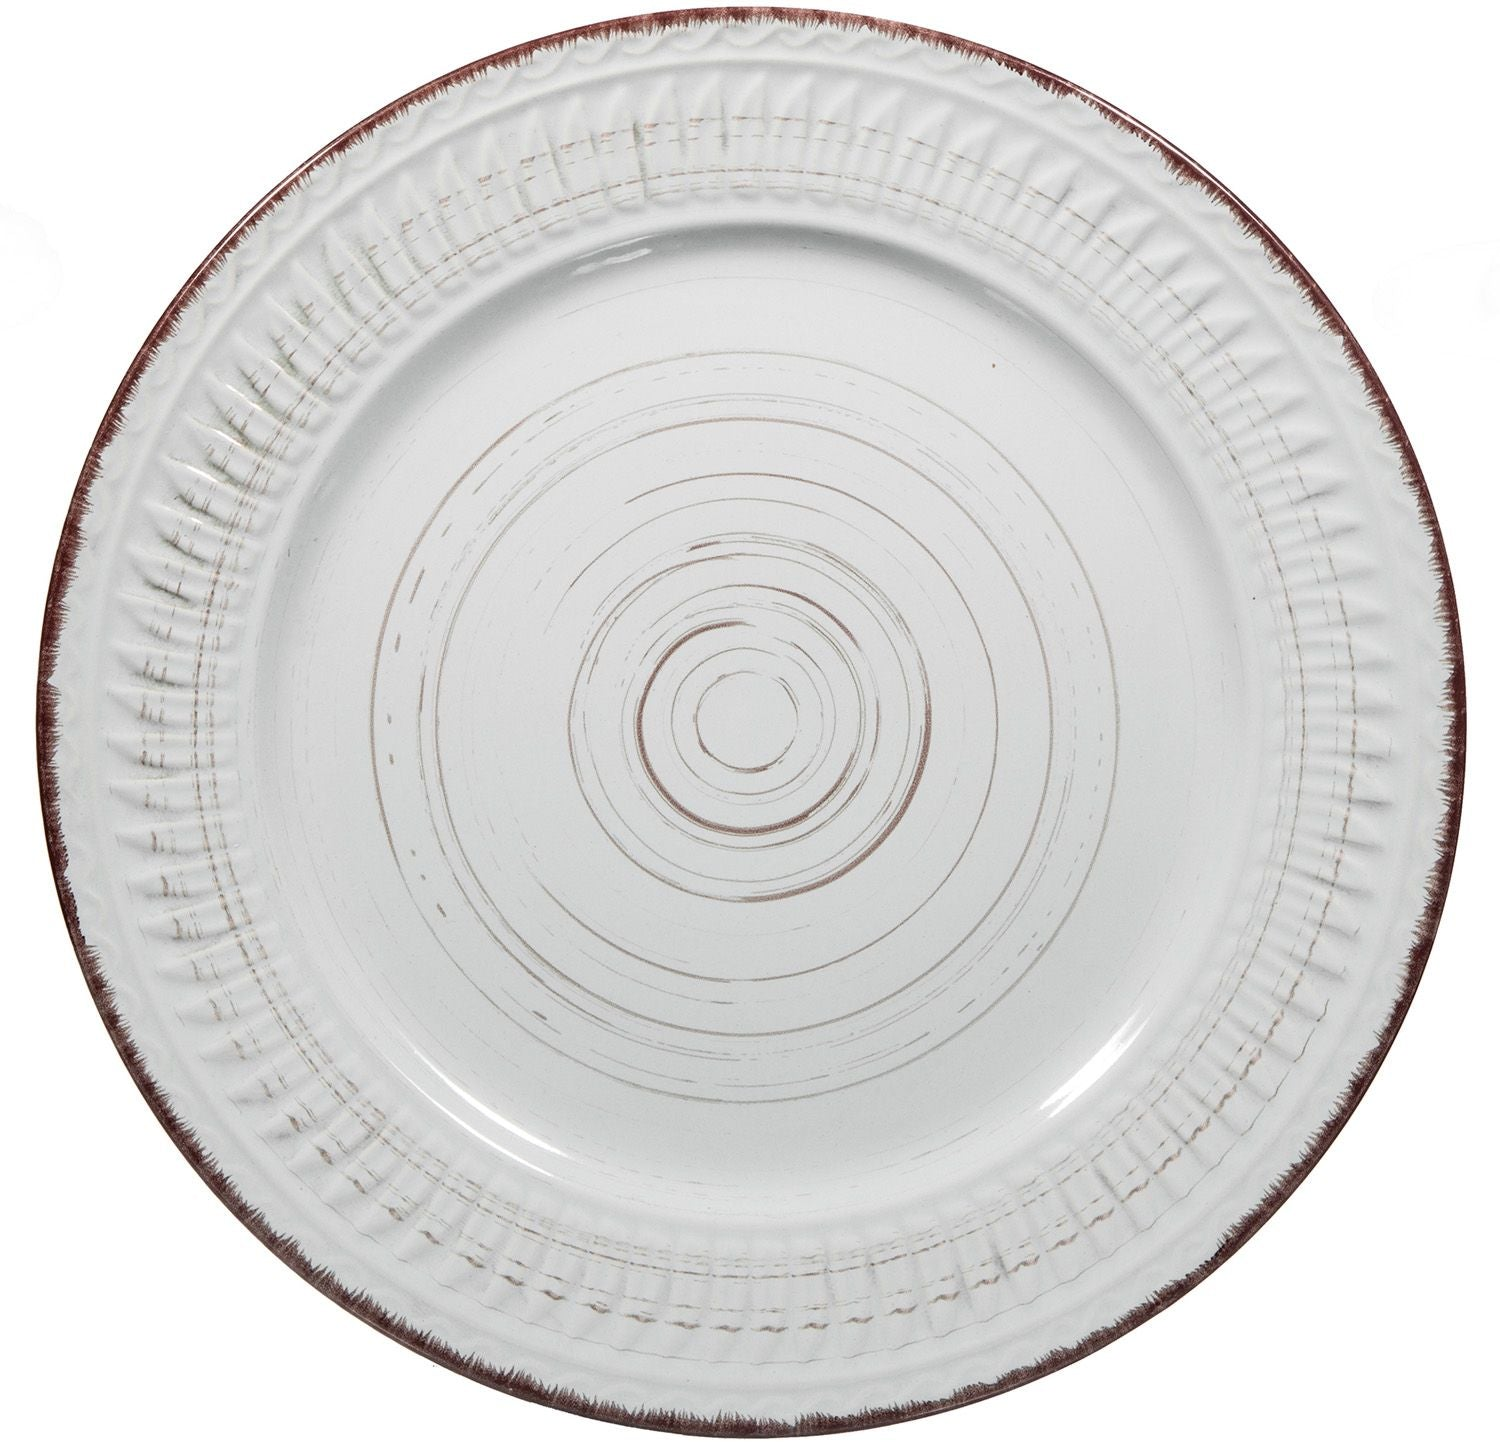 Cosenza Wht Rd Salad Plate